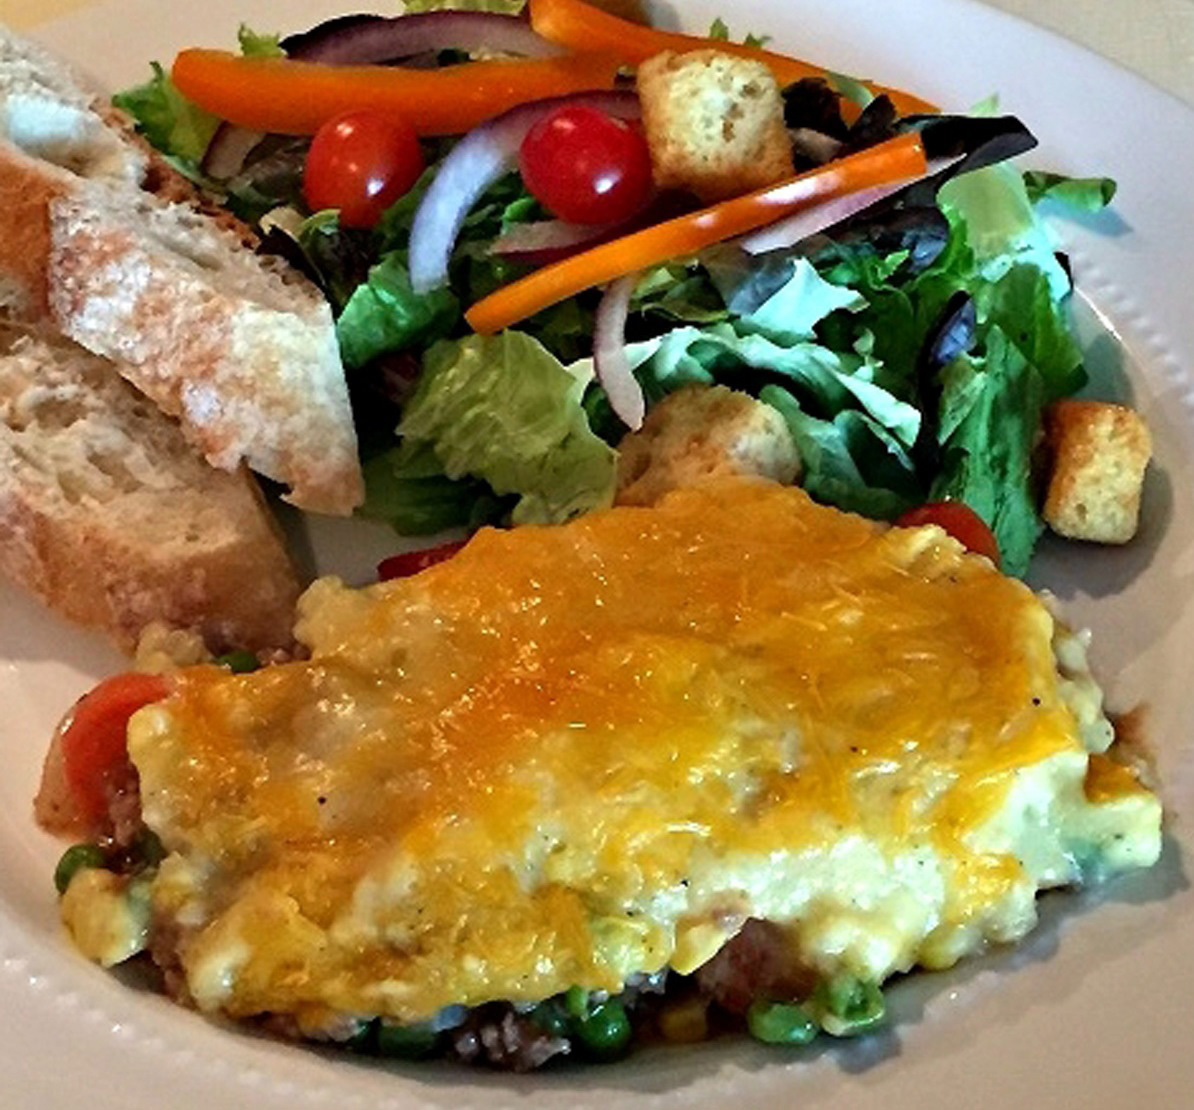 """<a href=""""http://www.mashupmom.com/shepherds-pie/"""">Blogger Mashup Mom</a> has a frugal recipe and great visuals for those interested in cooking Shepherd's Pie. (Courtesy Rachel Gordon/Mashup Mom)"""